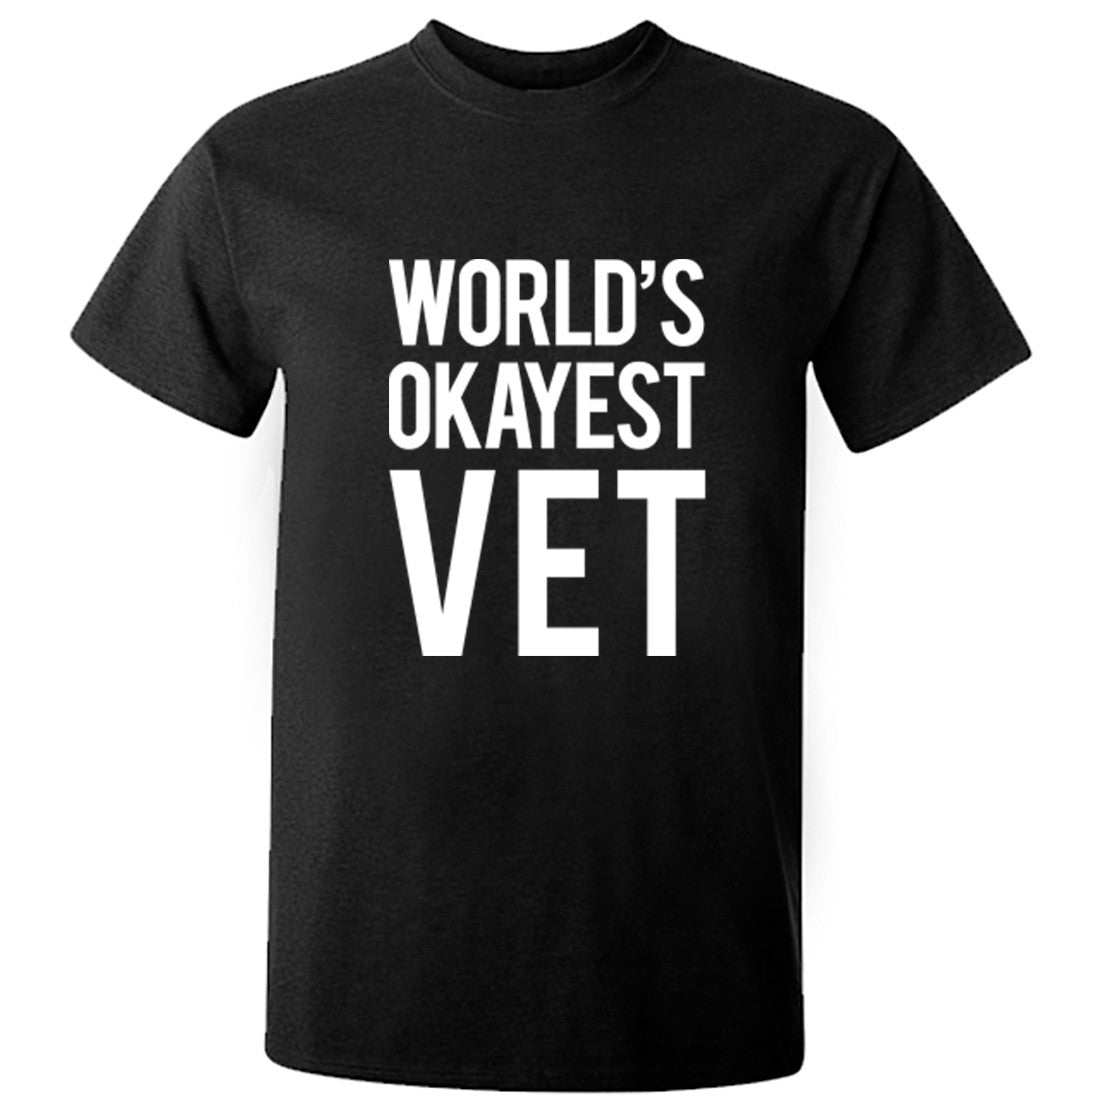 Worlds Okayest Vet Unisex Fit T-Shirt K0518 - Illustrated Identity Ltd.